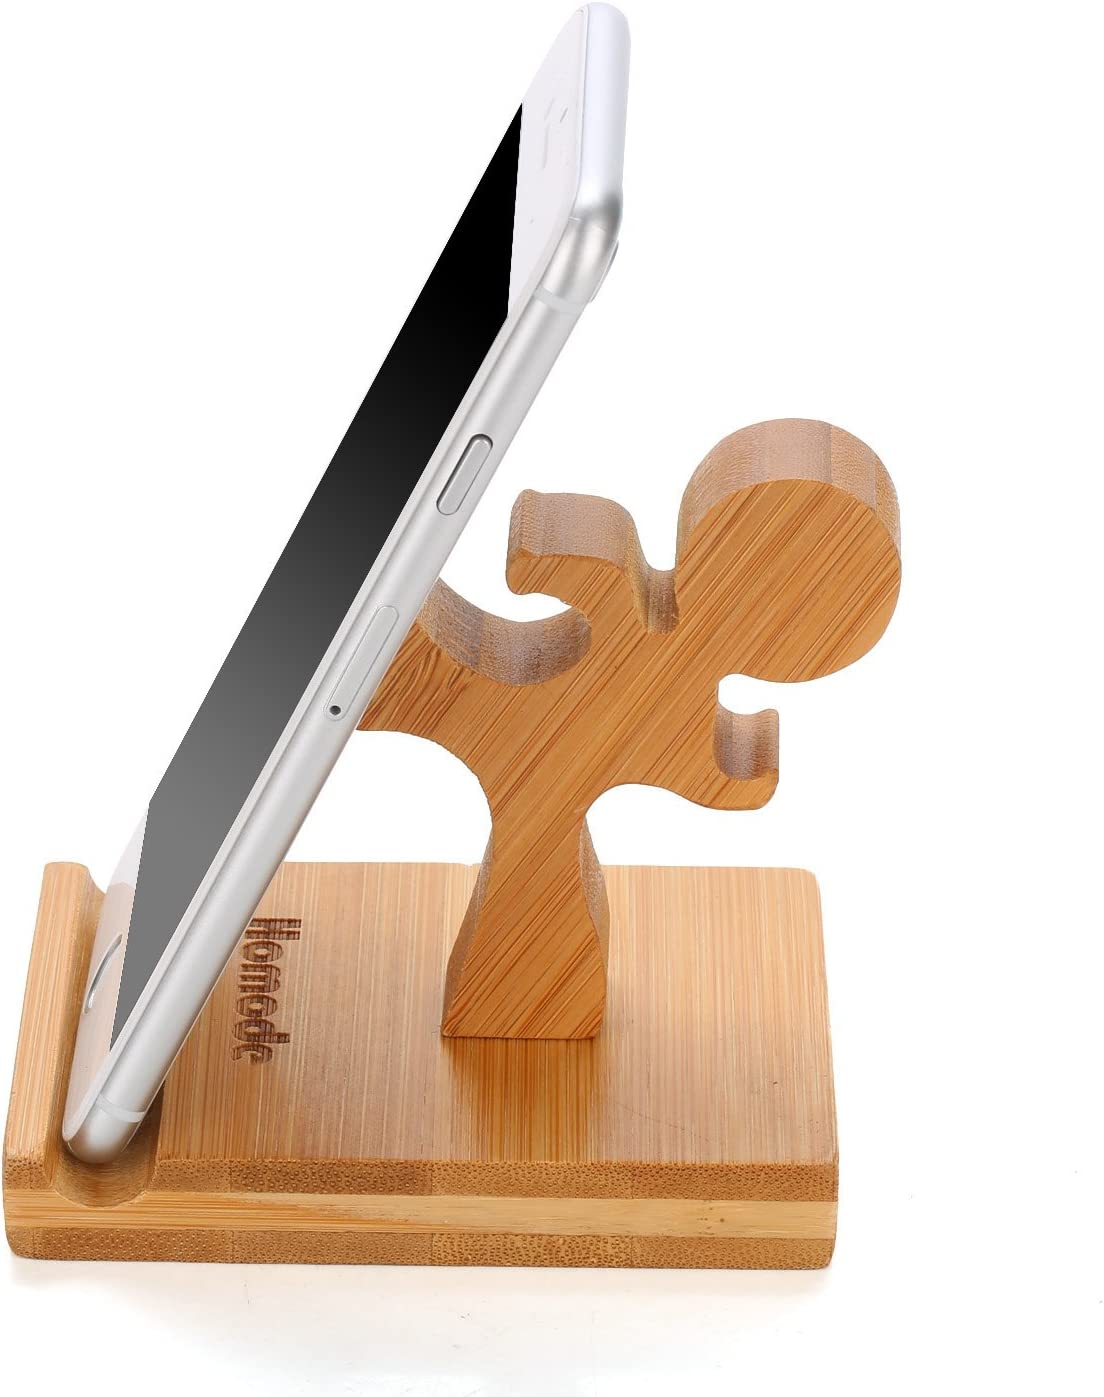 Homode Cell Phone Stand Bamboo Holder Max 76% OFF Cute Wood Popular popular and